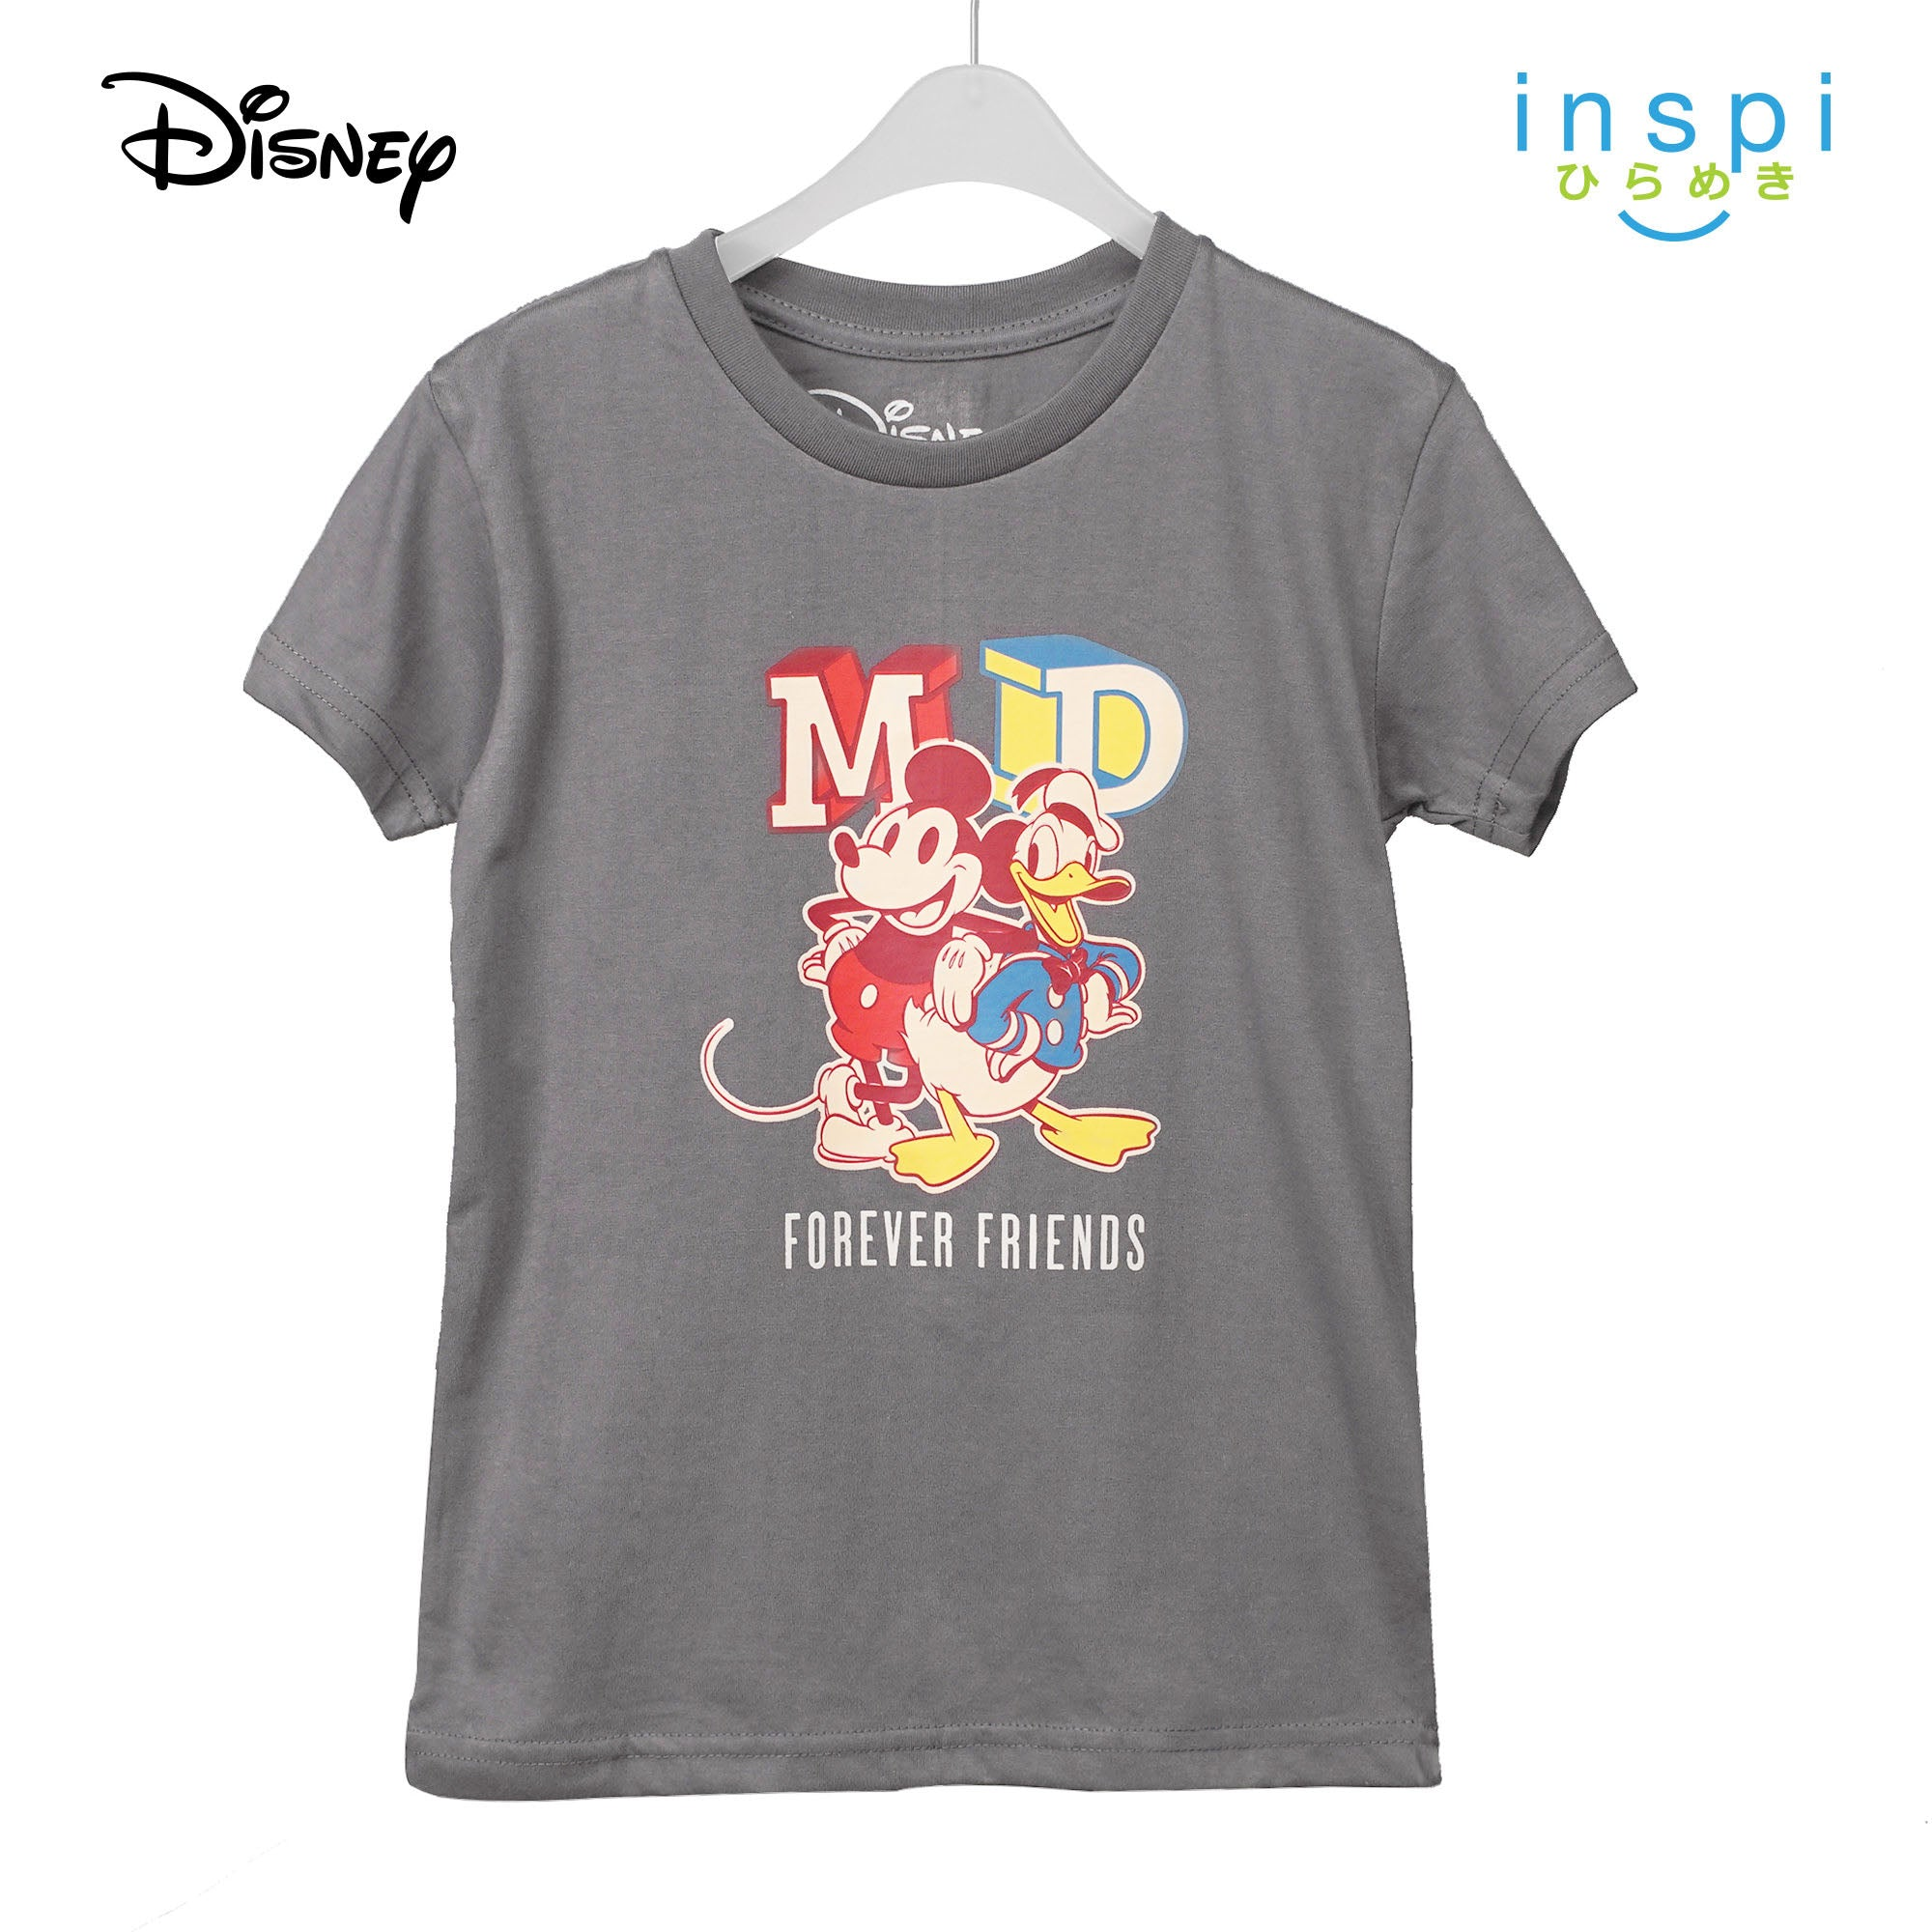 Disney Mickey Donald Forever Friends Tshirt in Sultry Gray for Boys Inspi Shirt